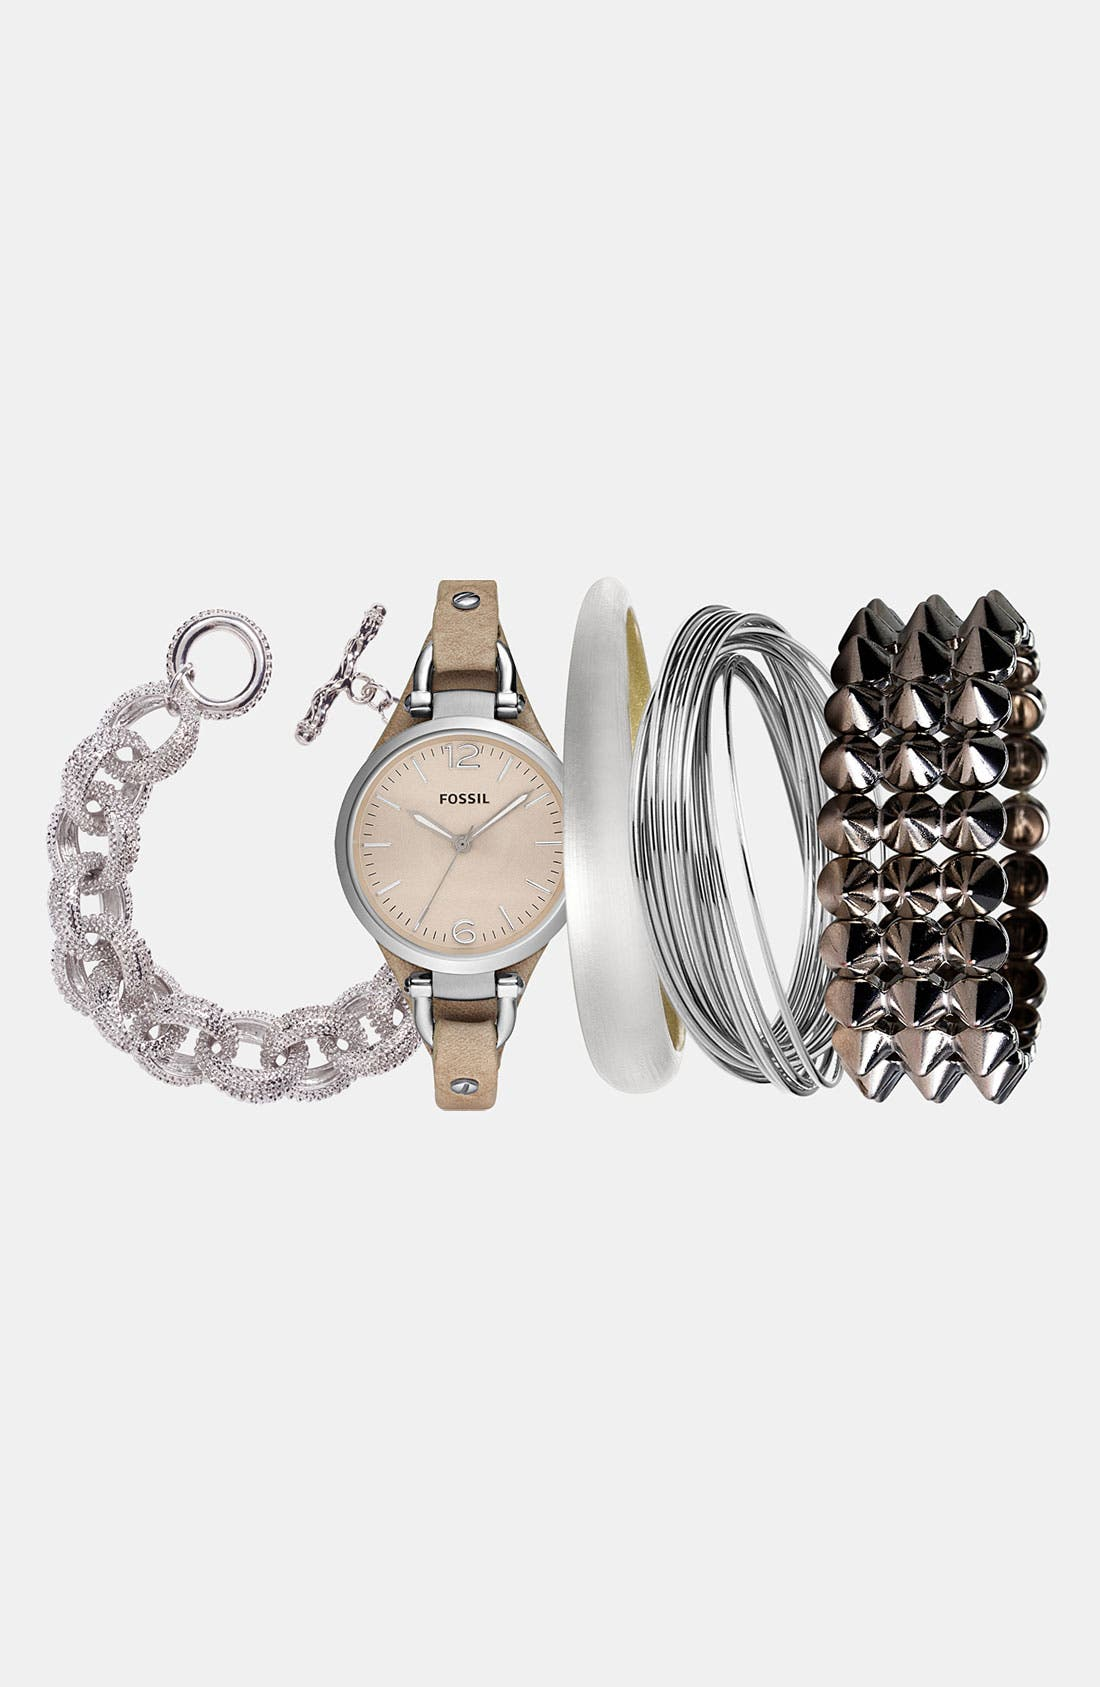 Alternate Image 1 Selected - Fossil Watch & Alexis Bittar Bangle